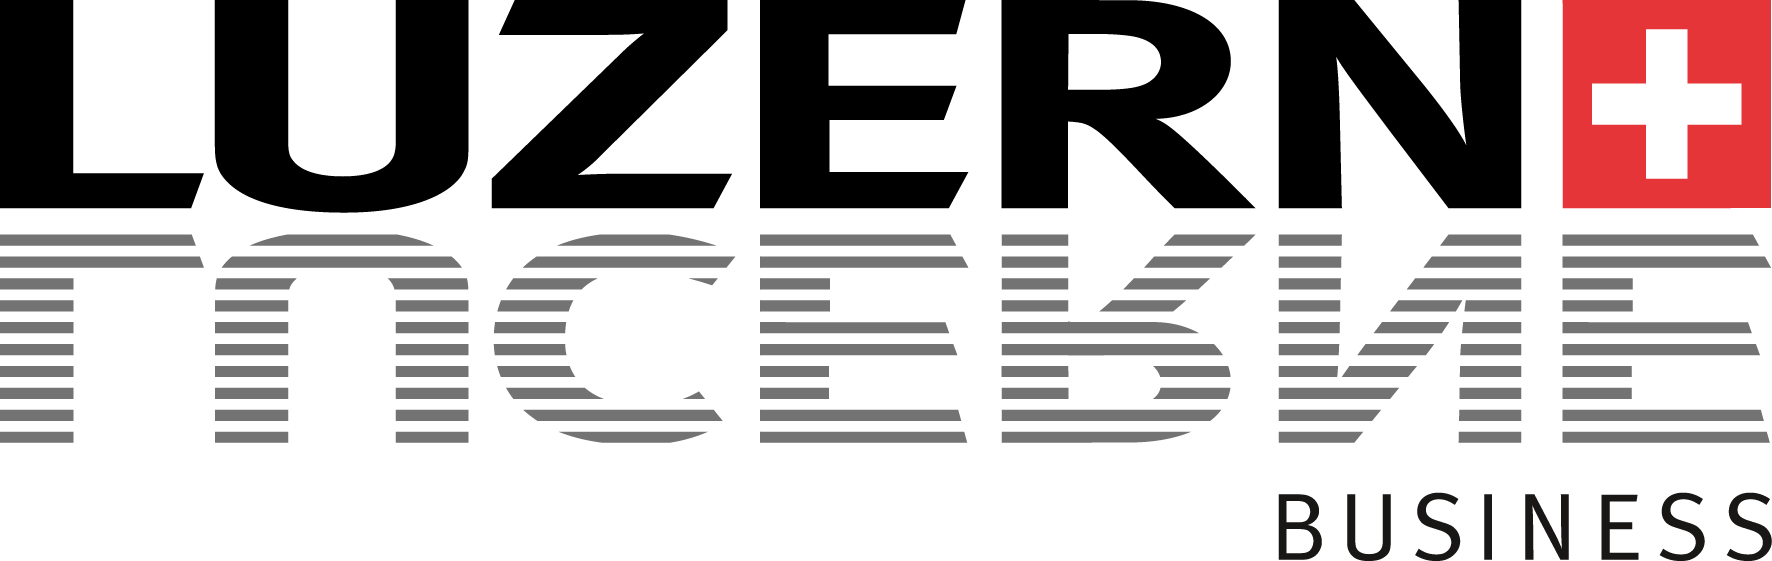 luzern-business_logo